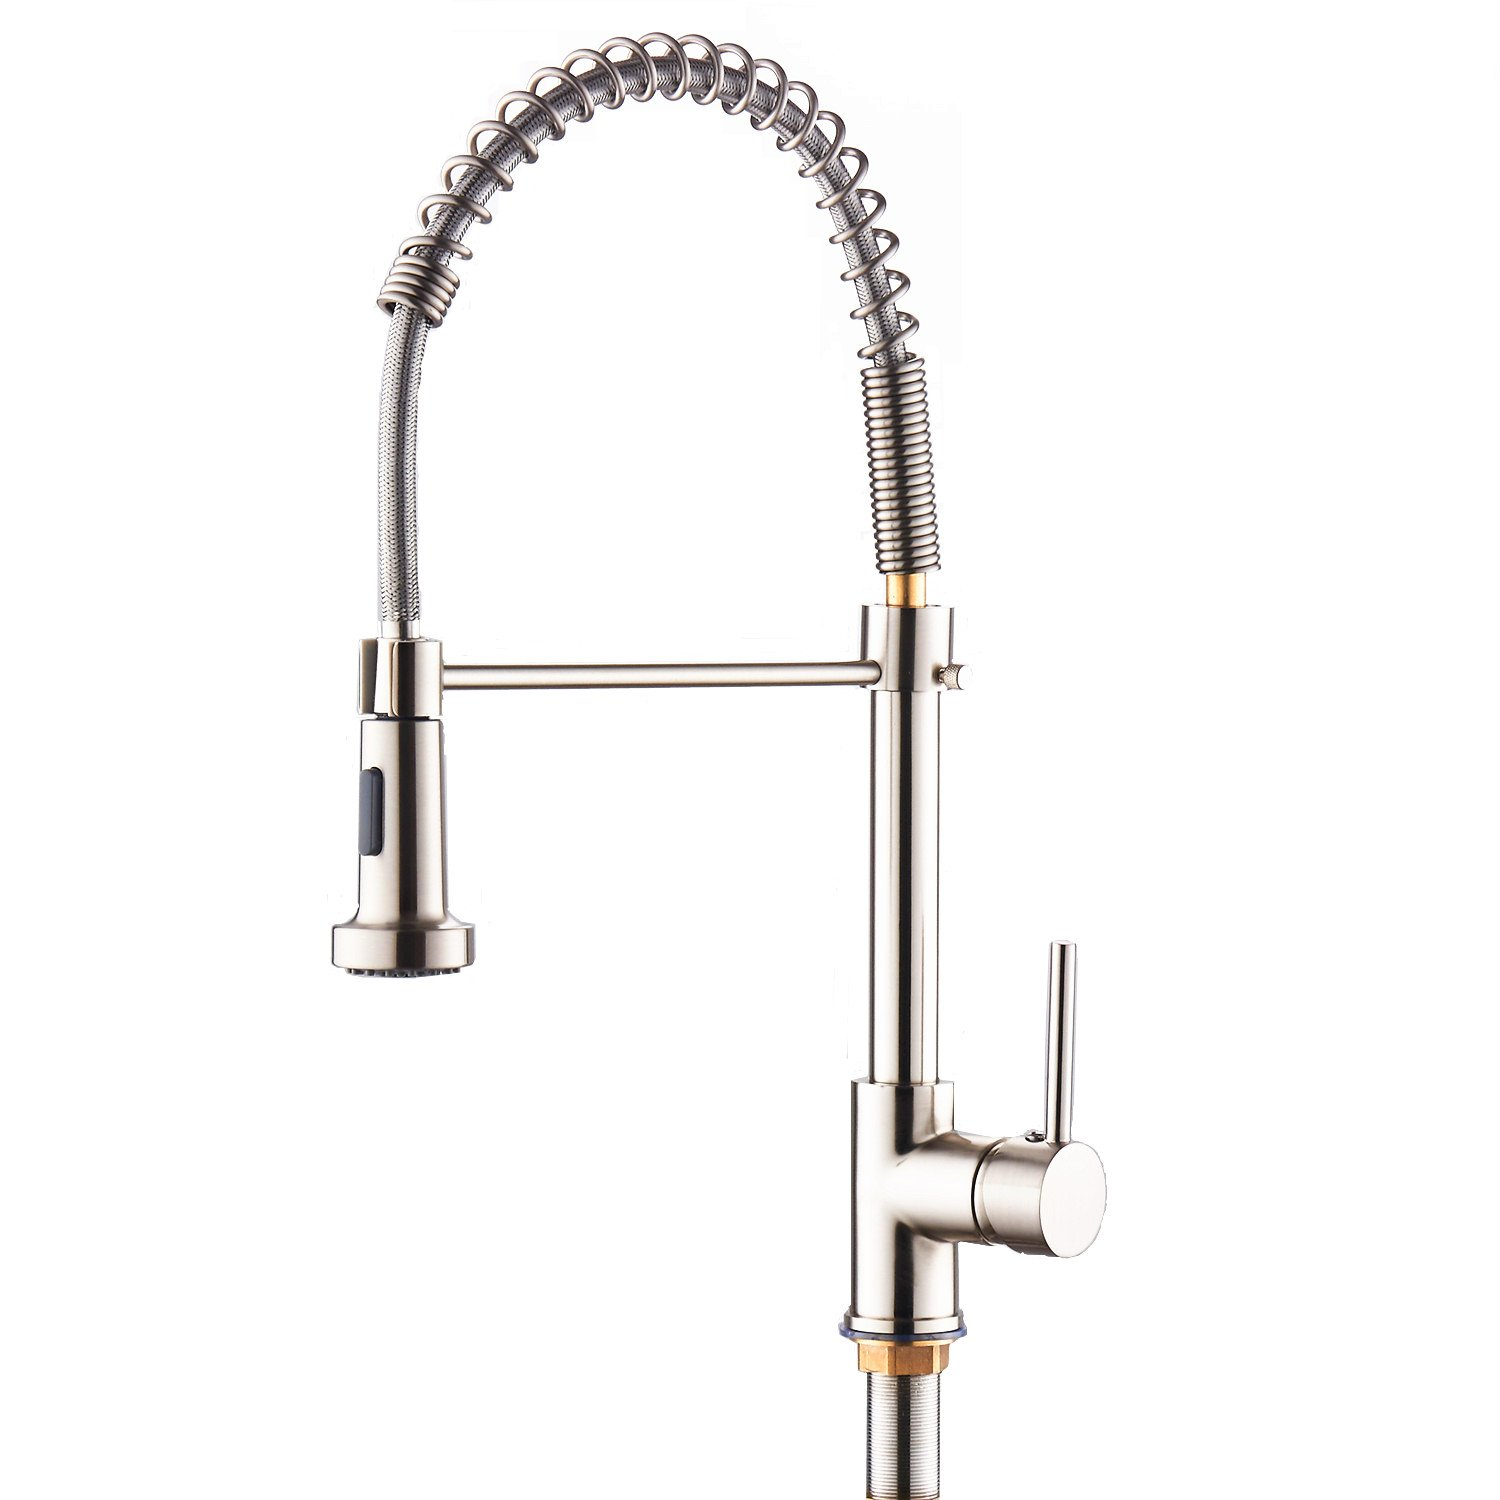 SOQO Modern Commercial One-Handle Pre-Rinse Pull Down Adjustable Kitchen Faucet Dual Function with Shower Sprayer (Brushed Nickel) by SOQO